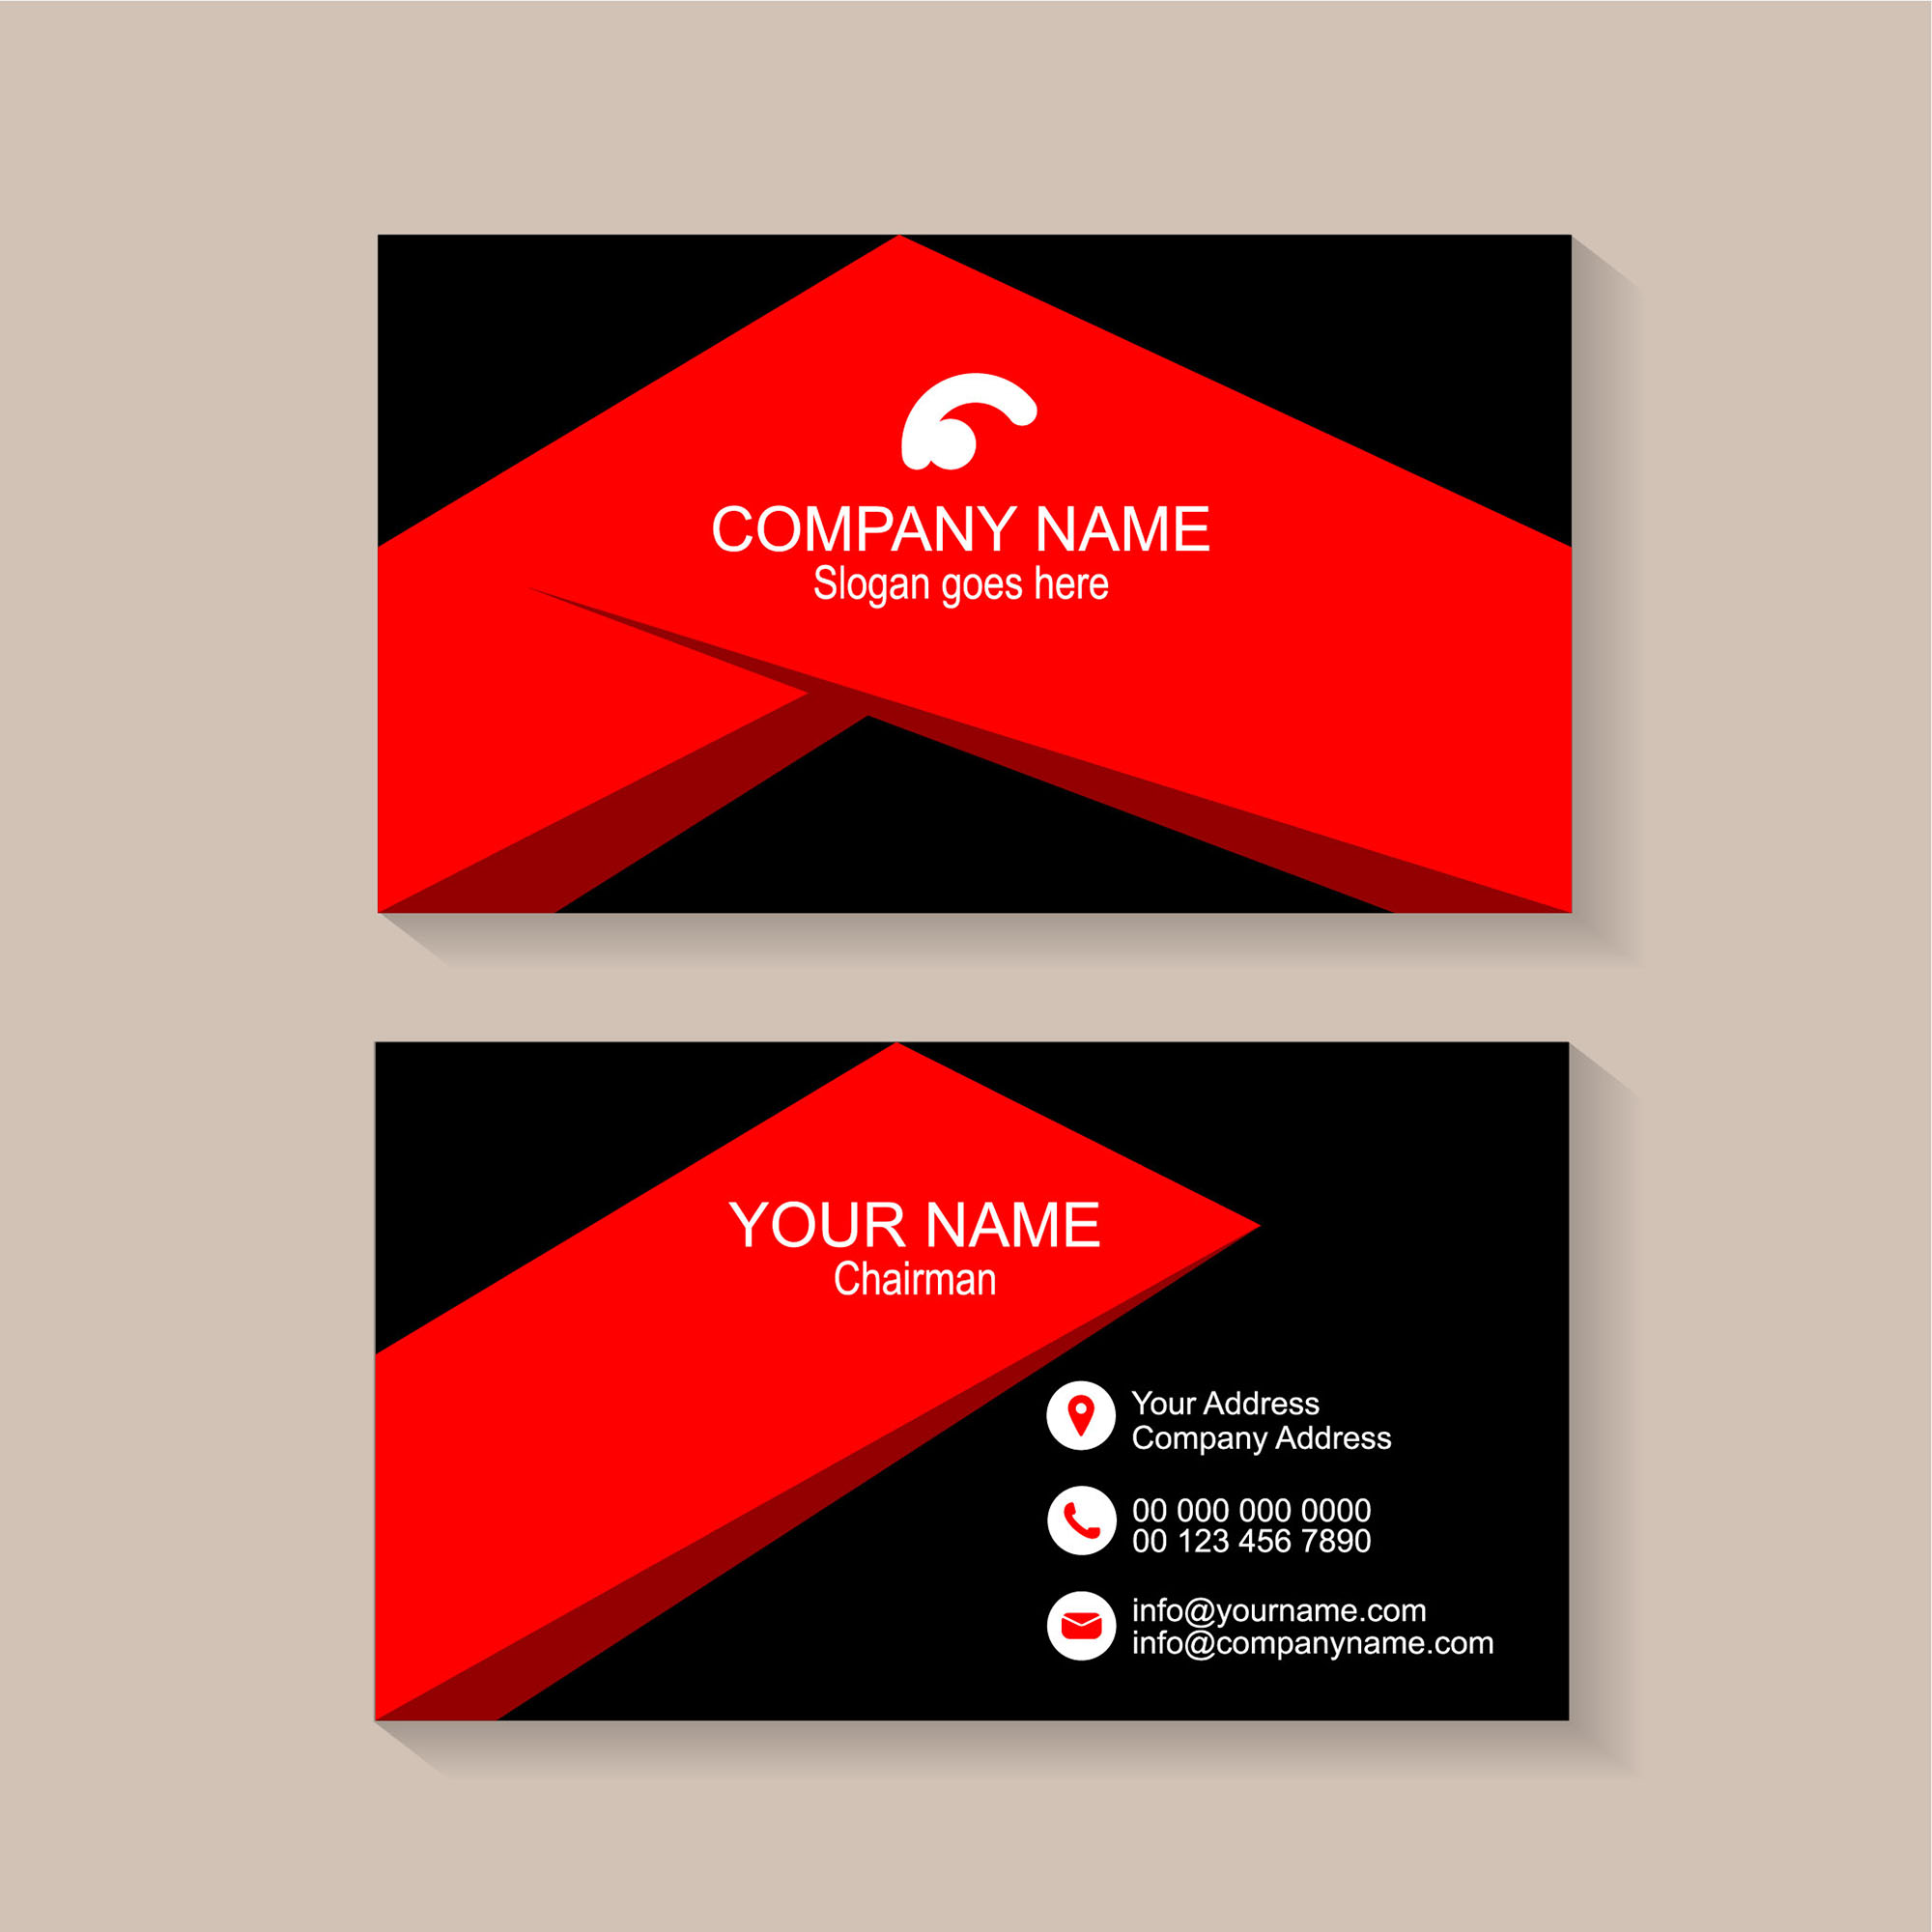 Business card template design free download wisxi business card business cards business card design business card template design templates friedricerecipe Choice Image